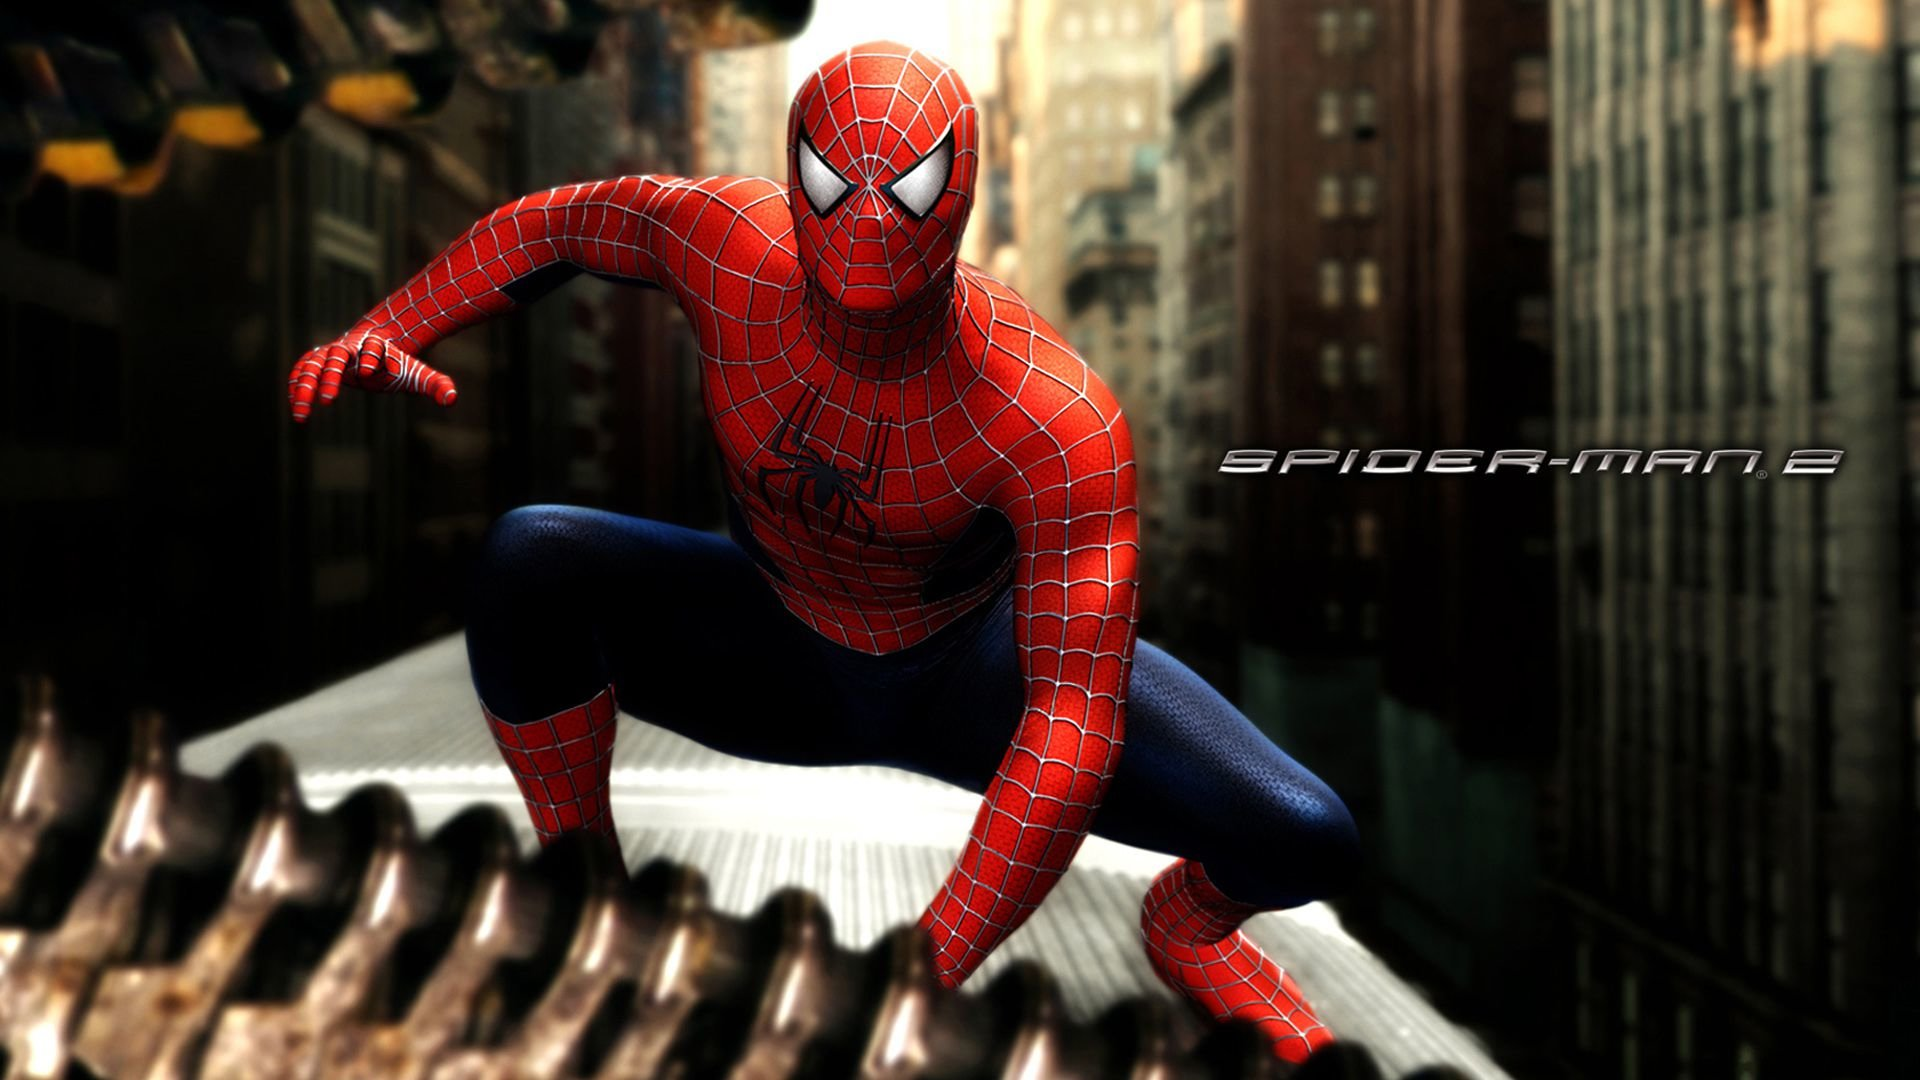 Free Download Spider Man 2 Wallpaper Id 270690 Hd 1080p For Computer